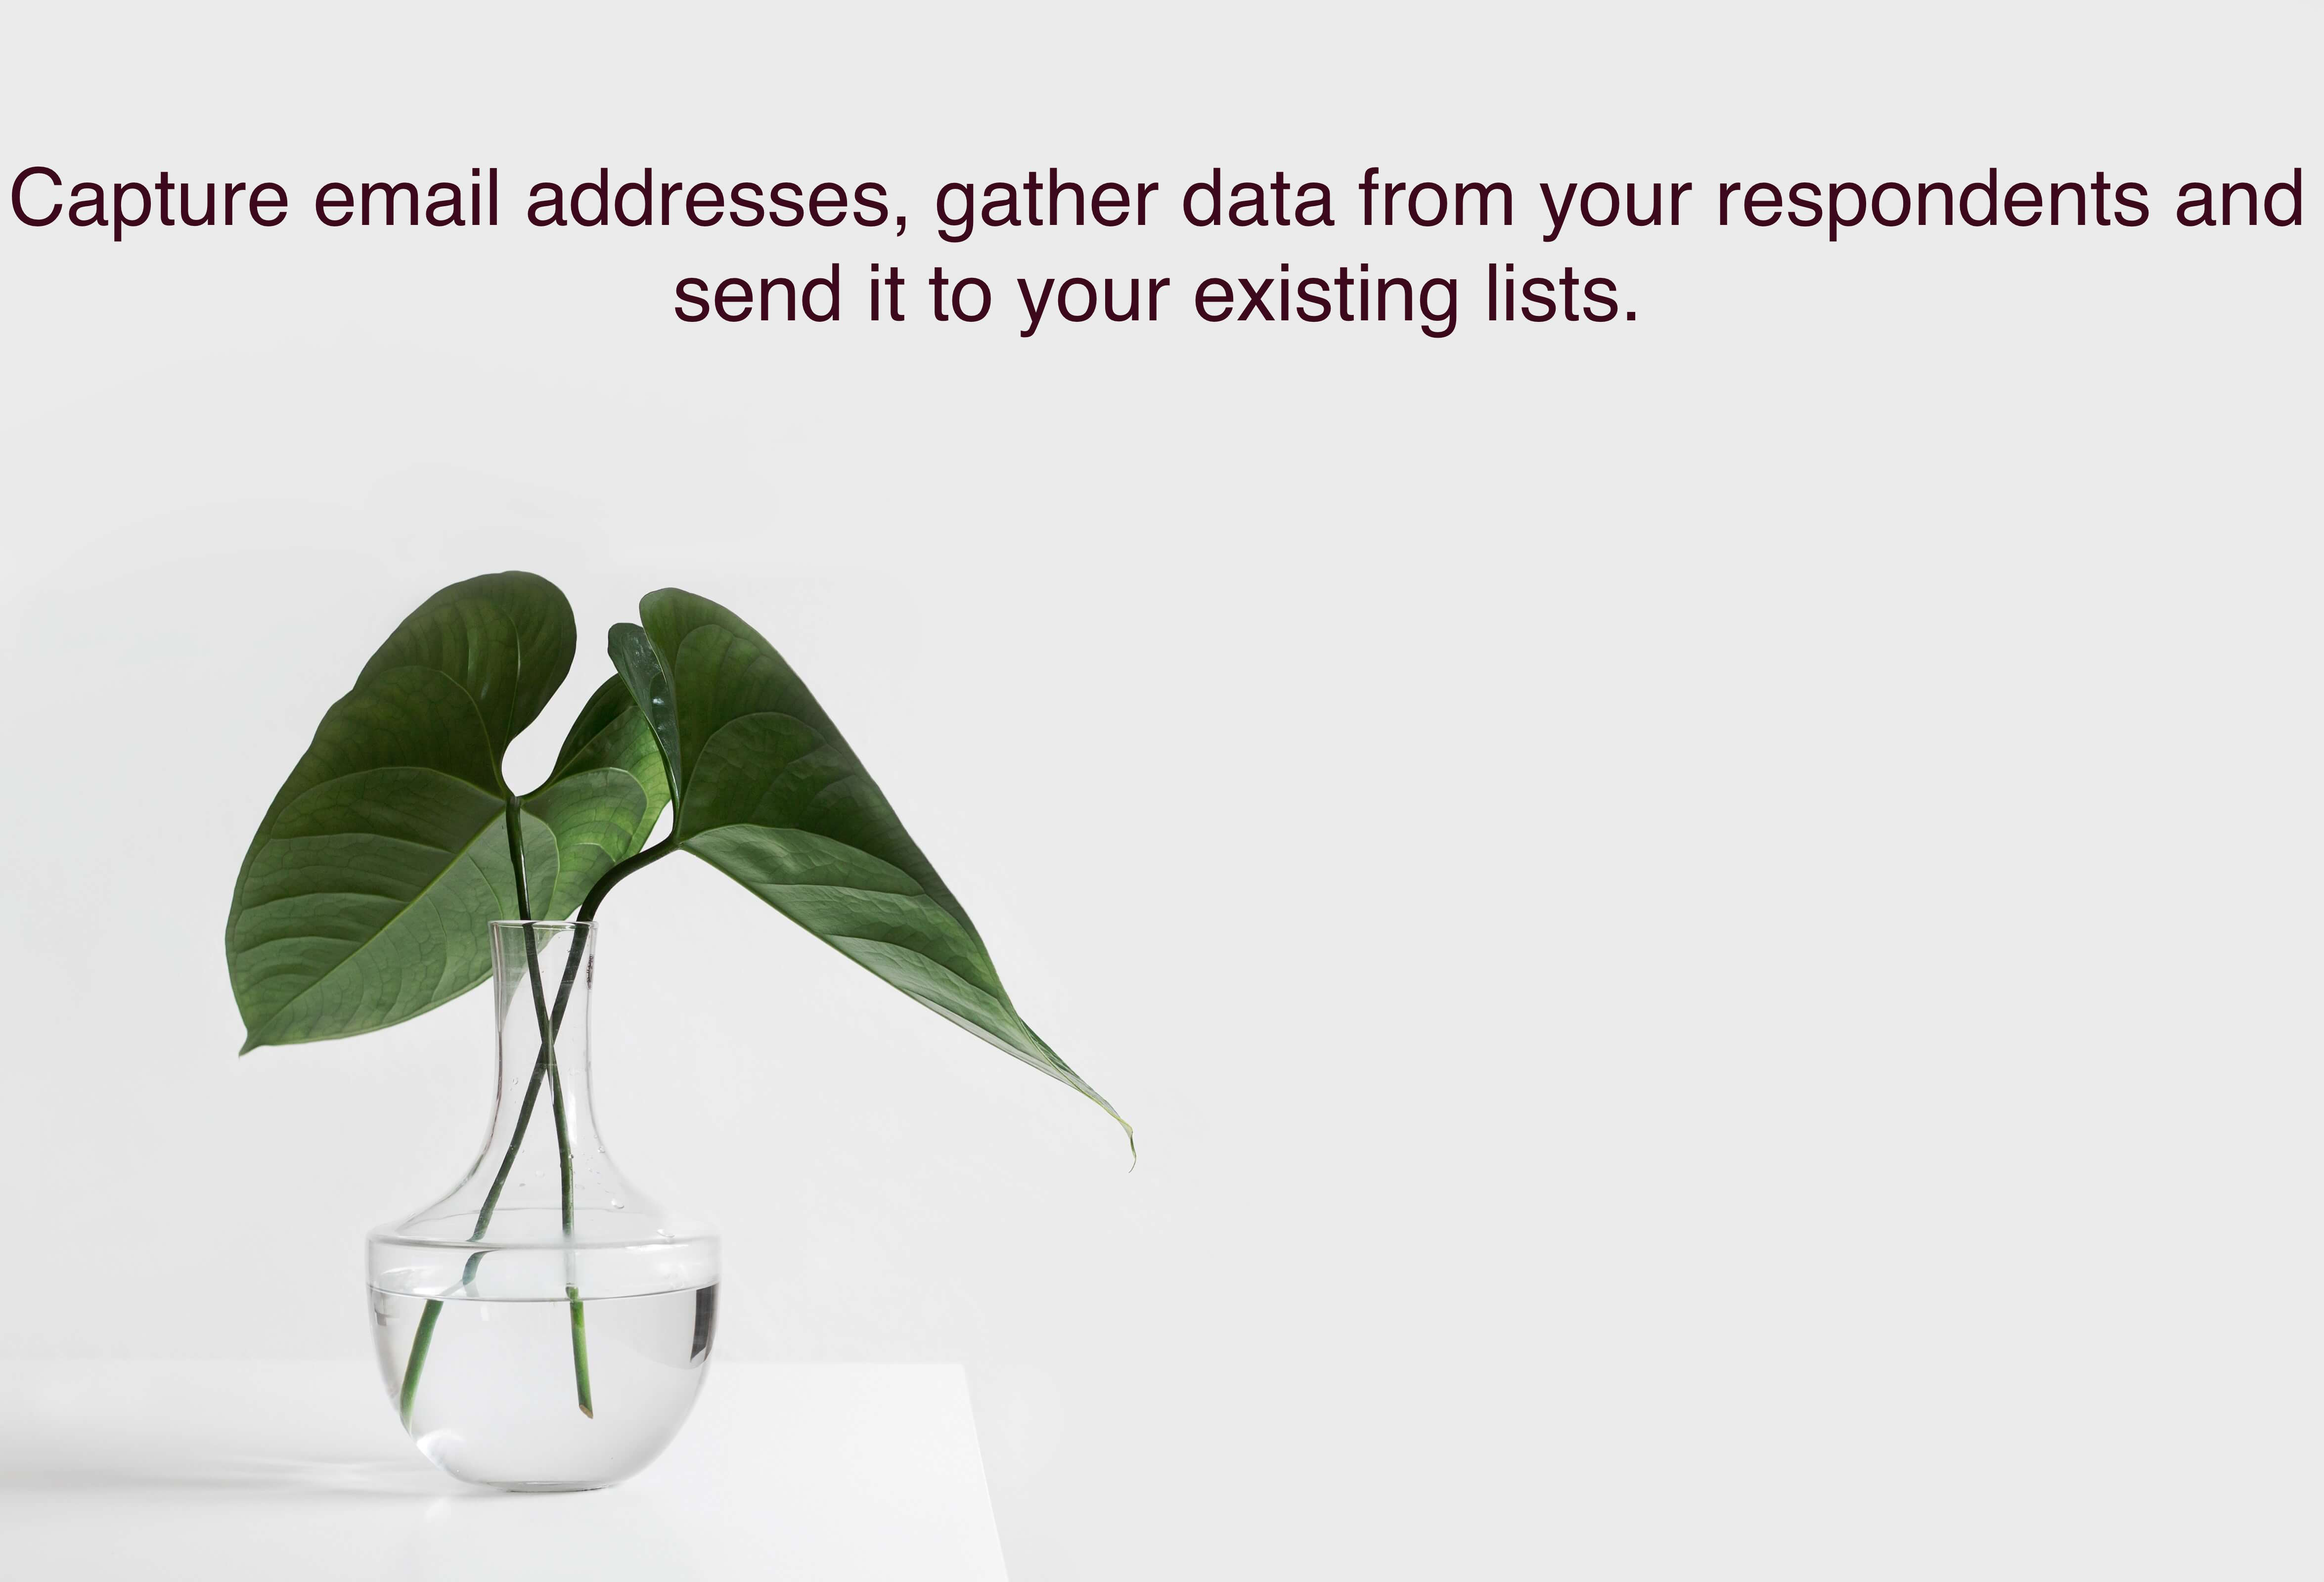 Riddle's Quiz Maker lets you capture email addresses and with its help, you can gather data from your respondents and send it to your existing lists via tools like MailChimp.